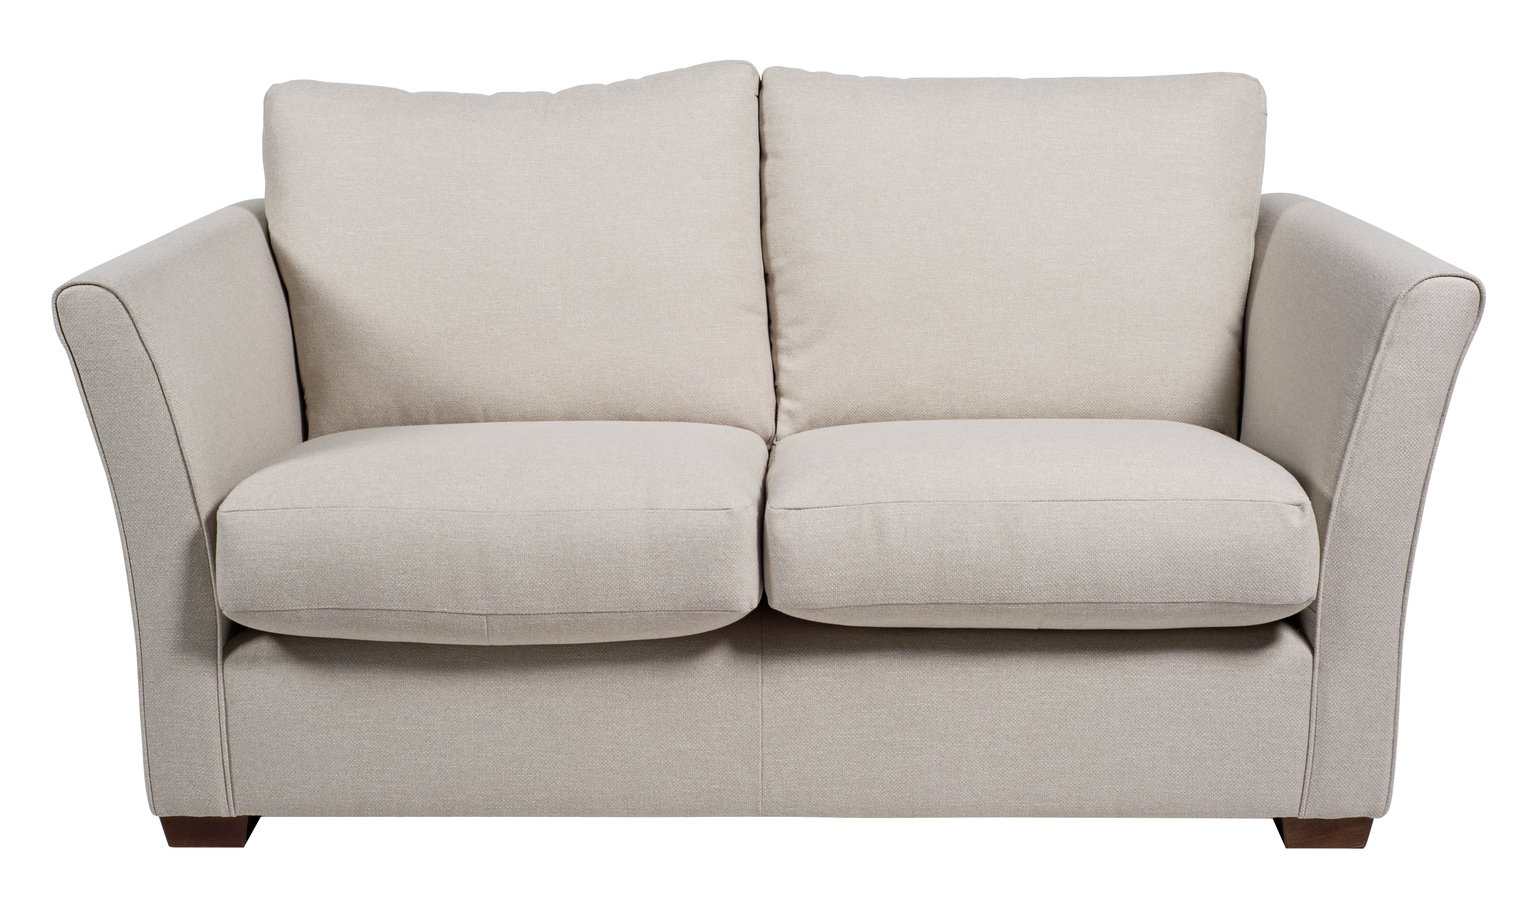 Argos Home Dawson 2 Seater Fabric Sofa - Natural